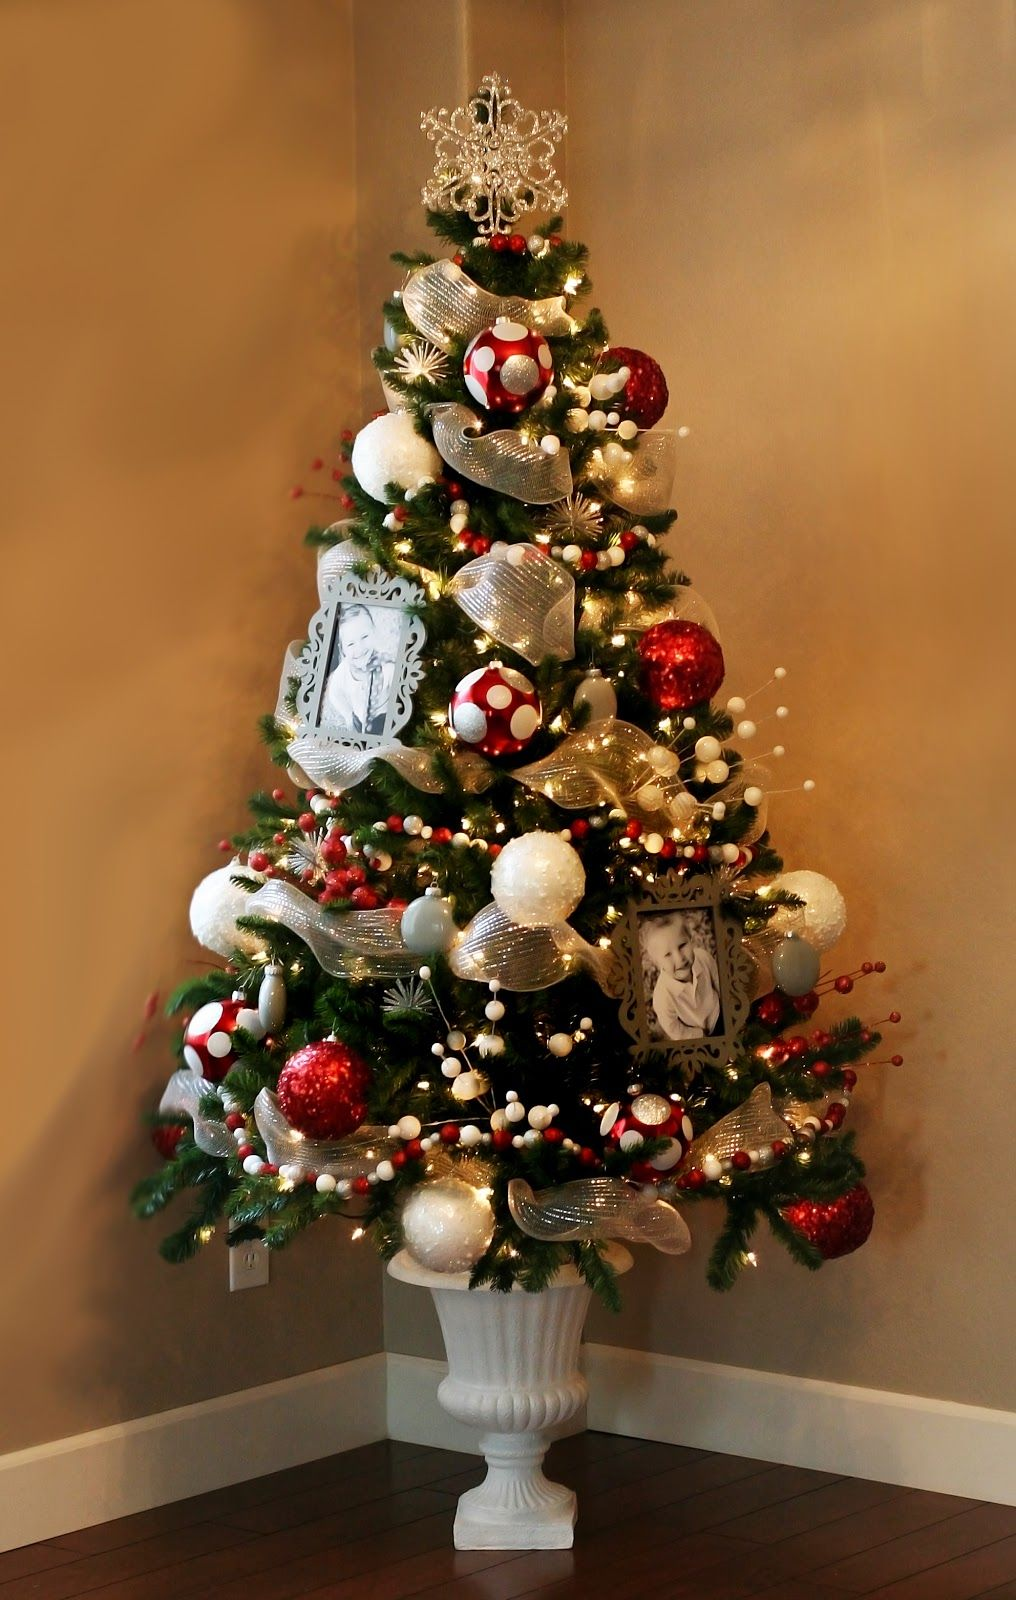 Idea For Christmas Decorating: Small Fake Trees In Urns Around The House.  Themes For